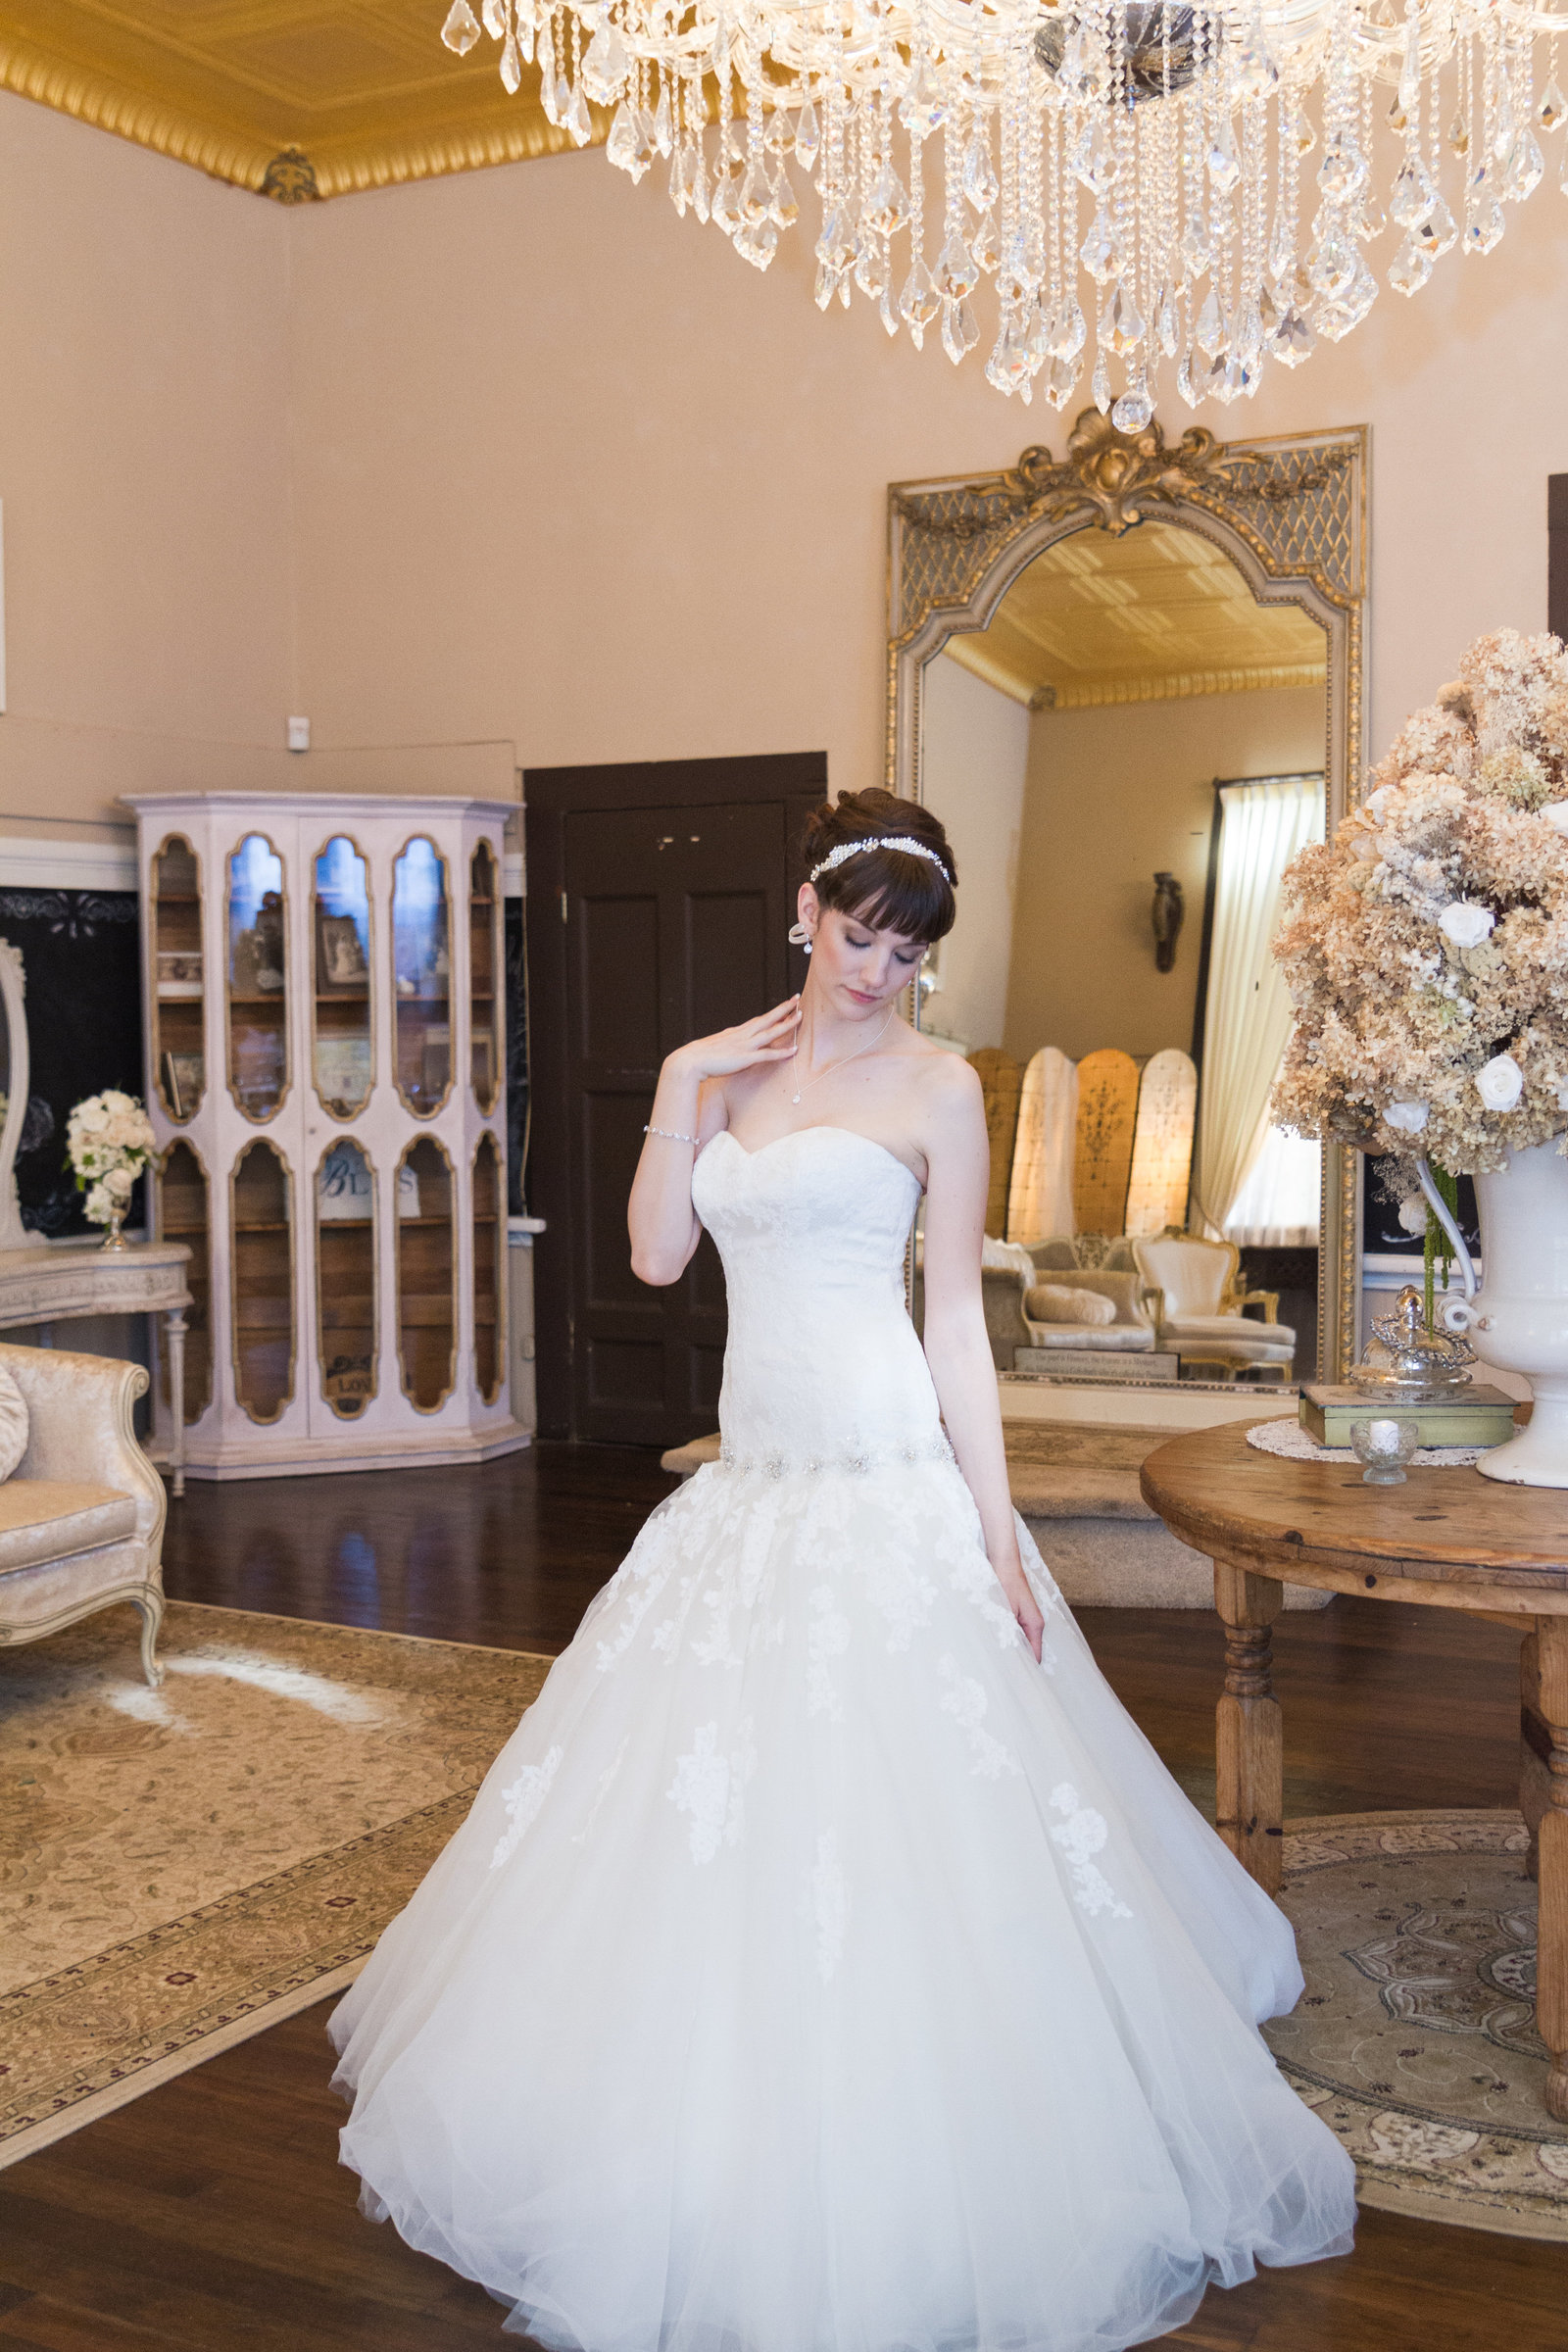 24-Twin Oaks house and garden wedding photo-San-Diego, California Wedding